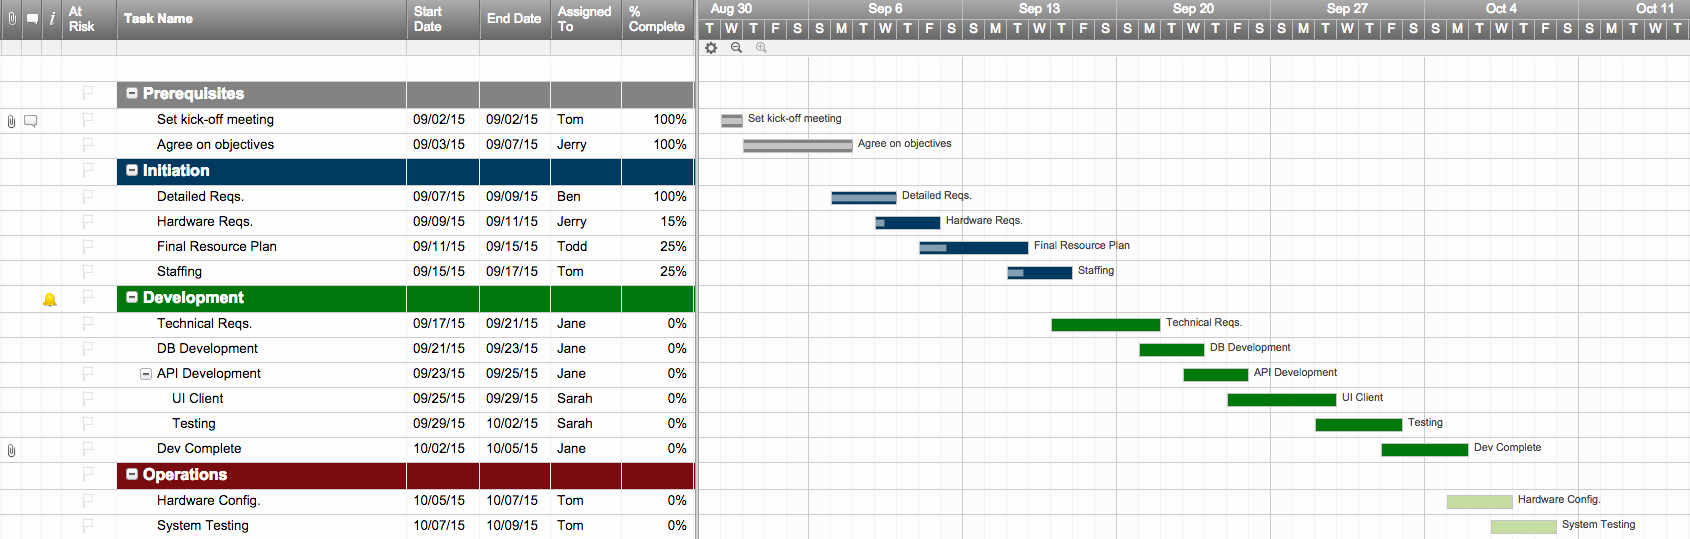 Work Plan Template Excel Awesome top Project Plan Templates for Excel